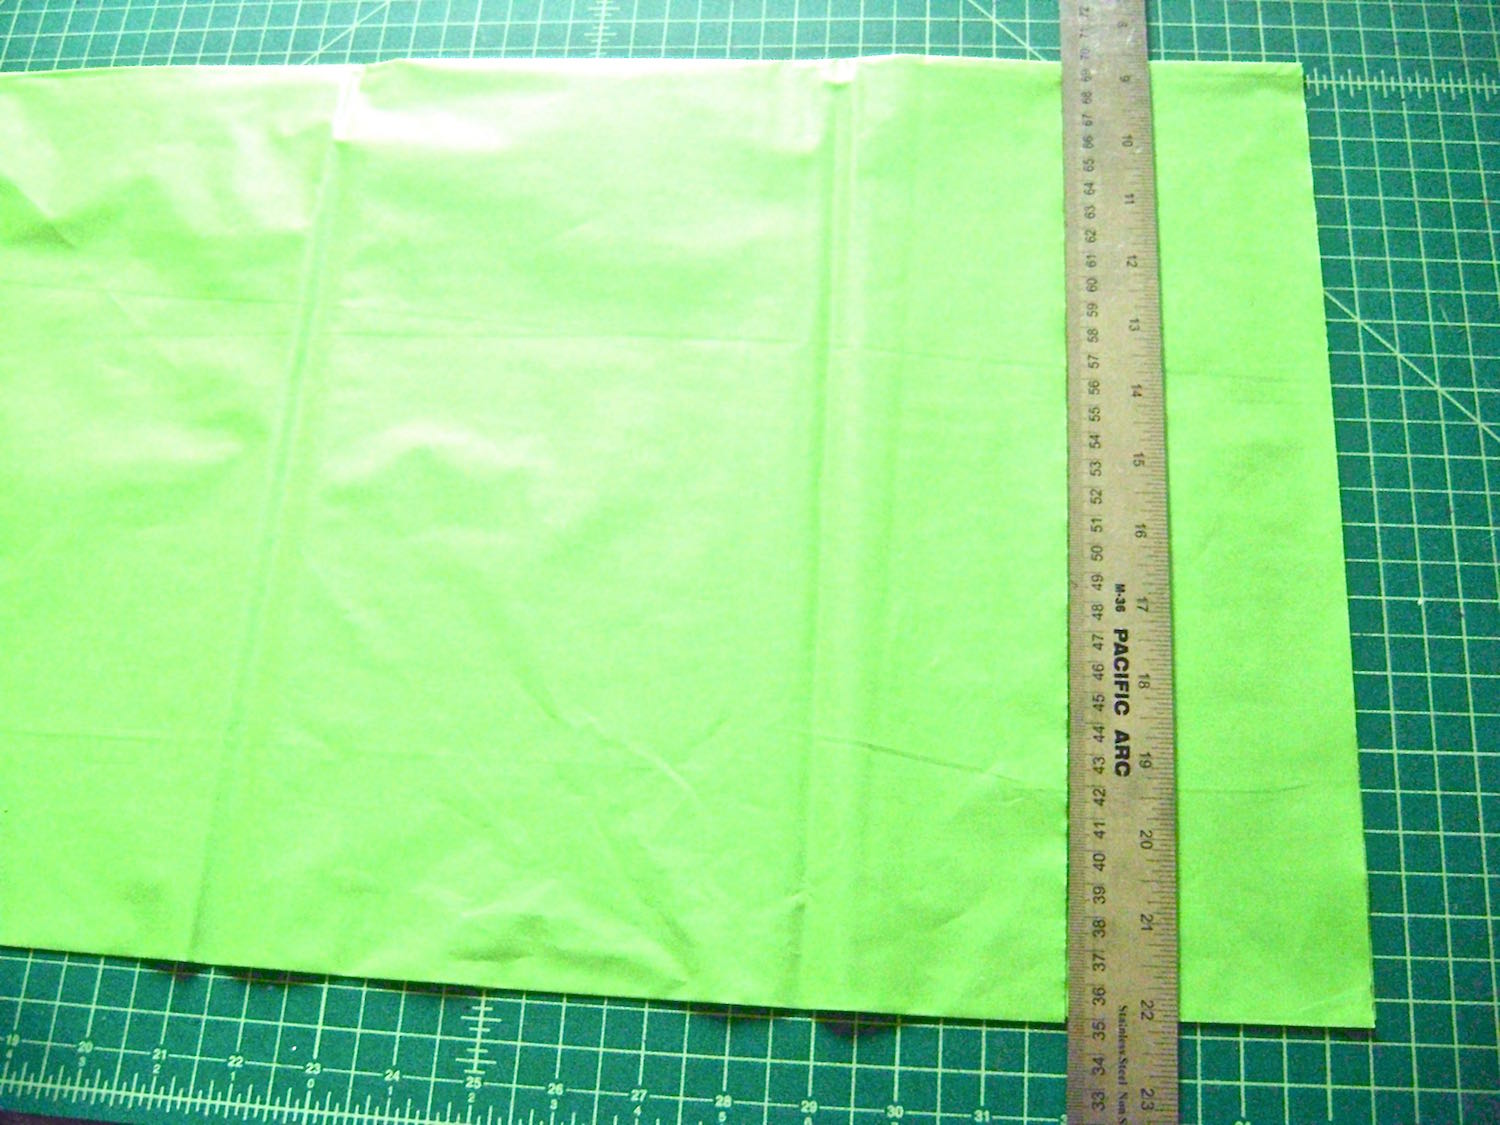 """step 3 - Remove the table cloth from the package and unfold it lengthwise. Do not open the width, leave it folded so you can cut several strips at once. Cut 3.50"""" wide strips across the length. You will need three of the green, yellow, and pink. Cut 21 to 24 of the white. How tightly you gather the strips will determine how many you will need. The individual strips will each measure3.5"""" x 54""""."""